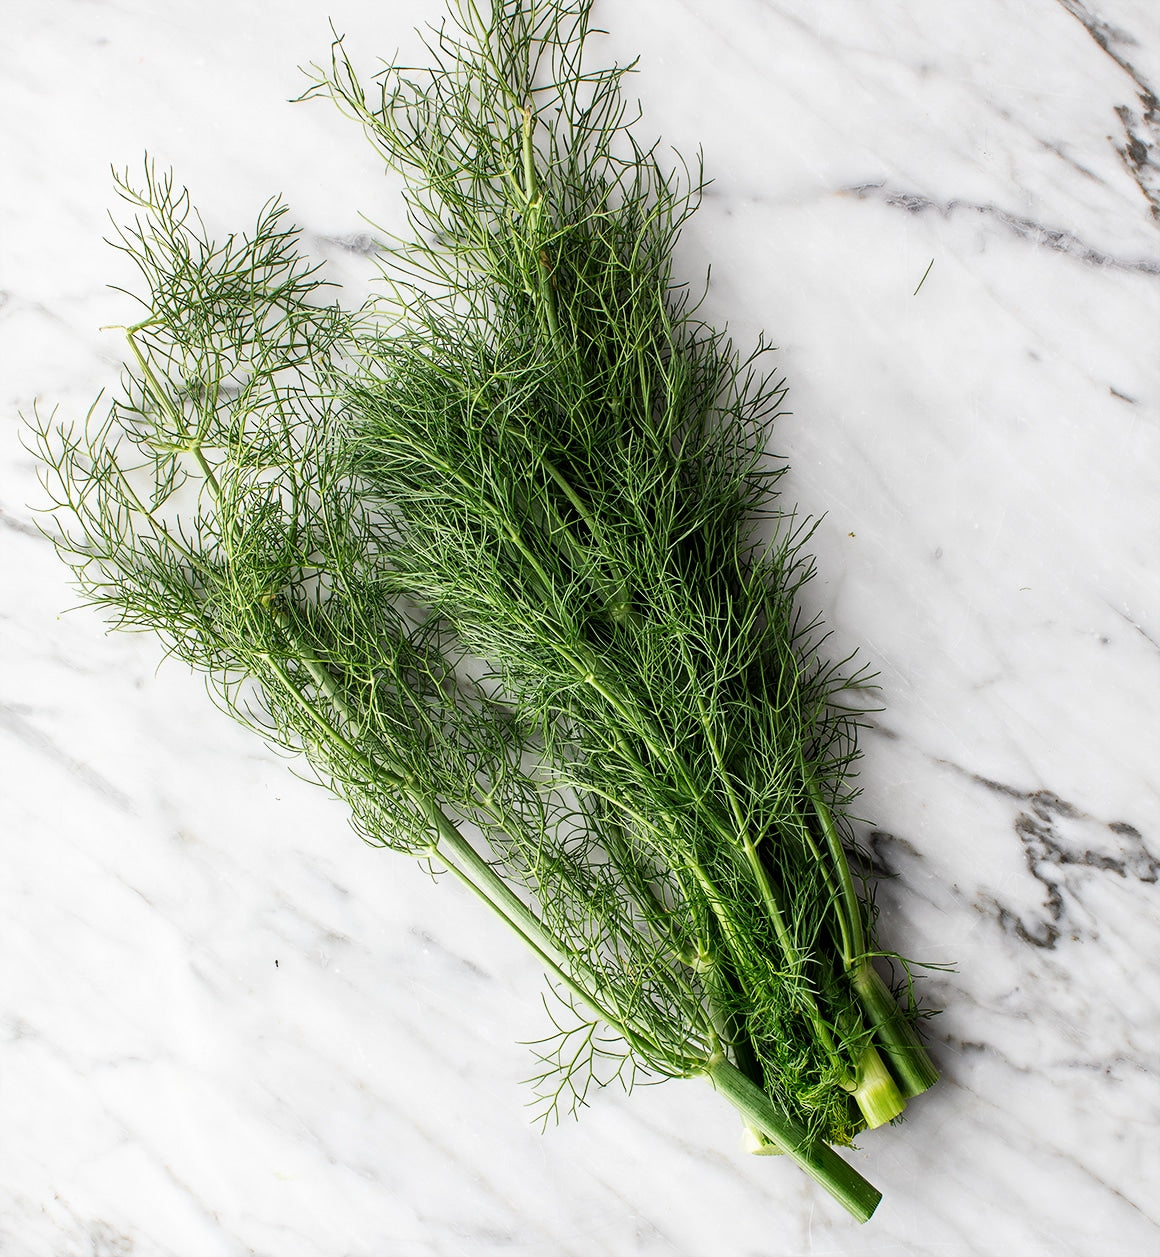 Herb - Organic Fennel Fronds, Freshly Harvested from Our Schools Garden